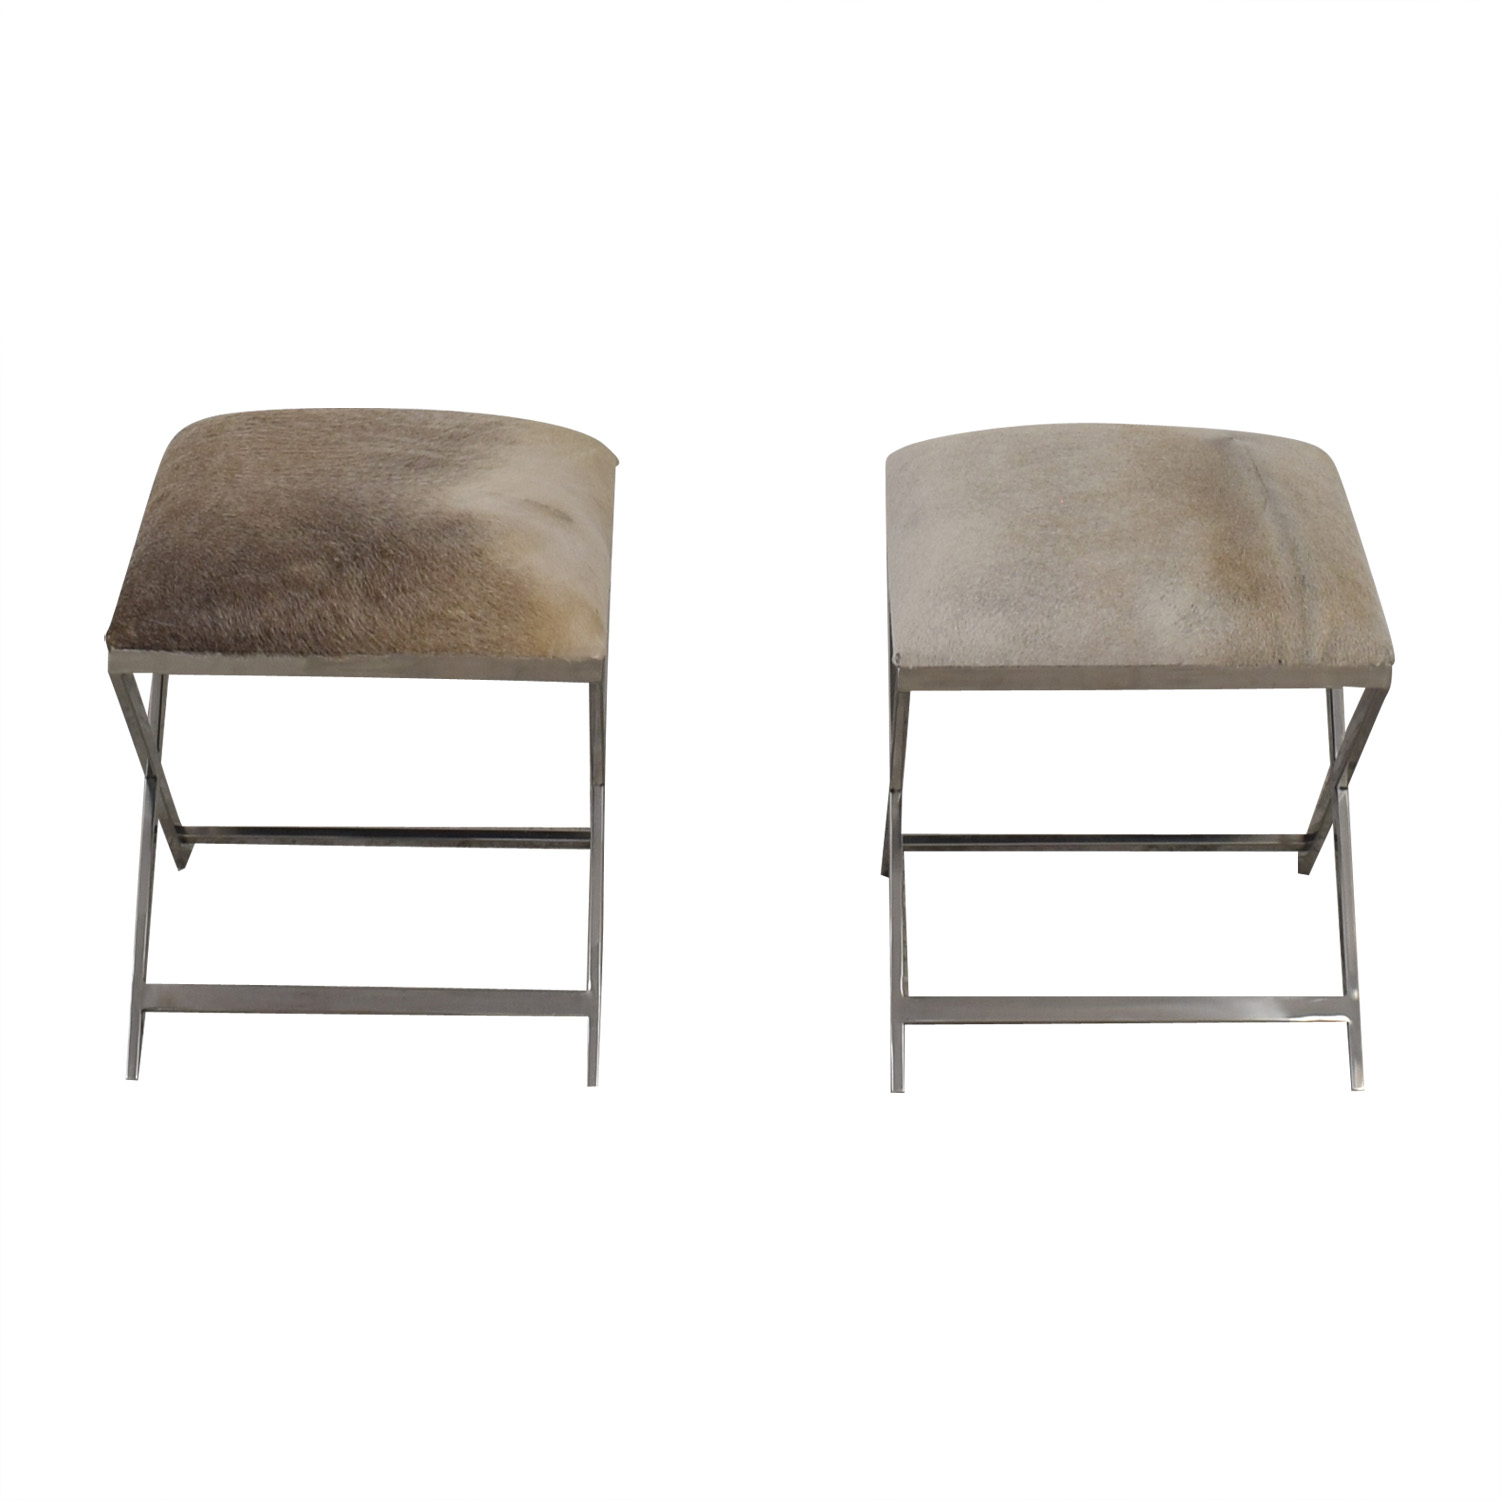 Tui Lifestyle Tui Lifestyle Shammy Hyde Stools second hand